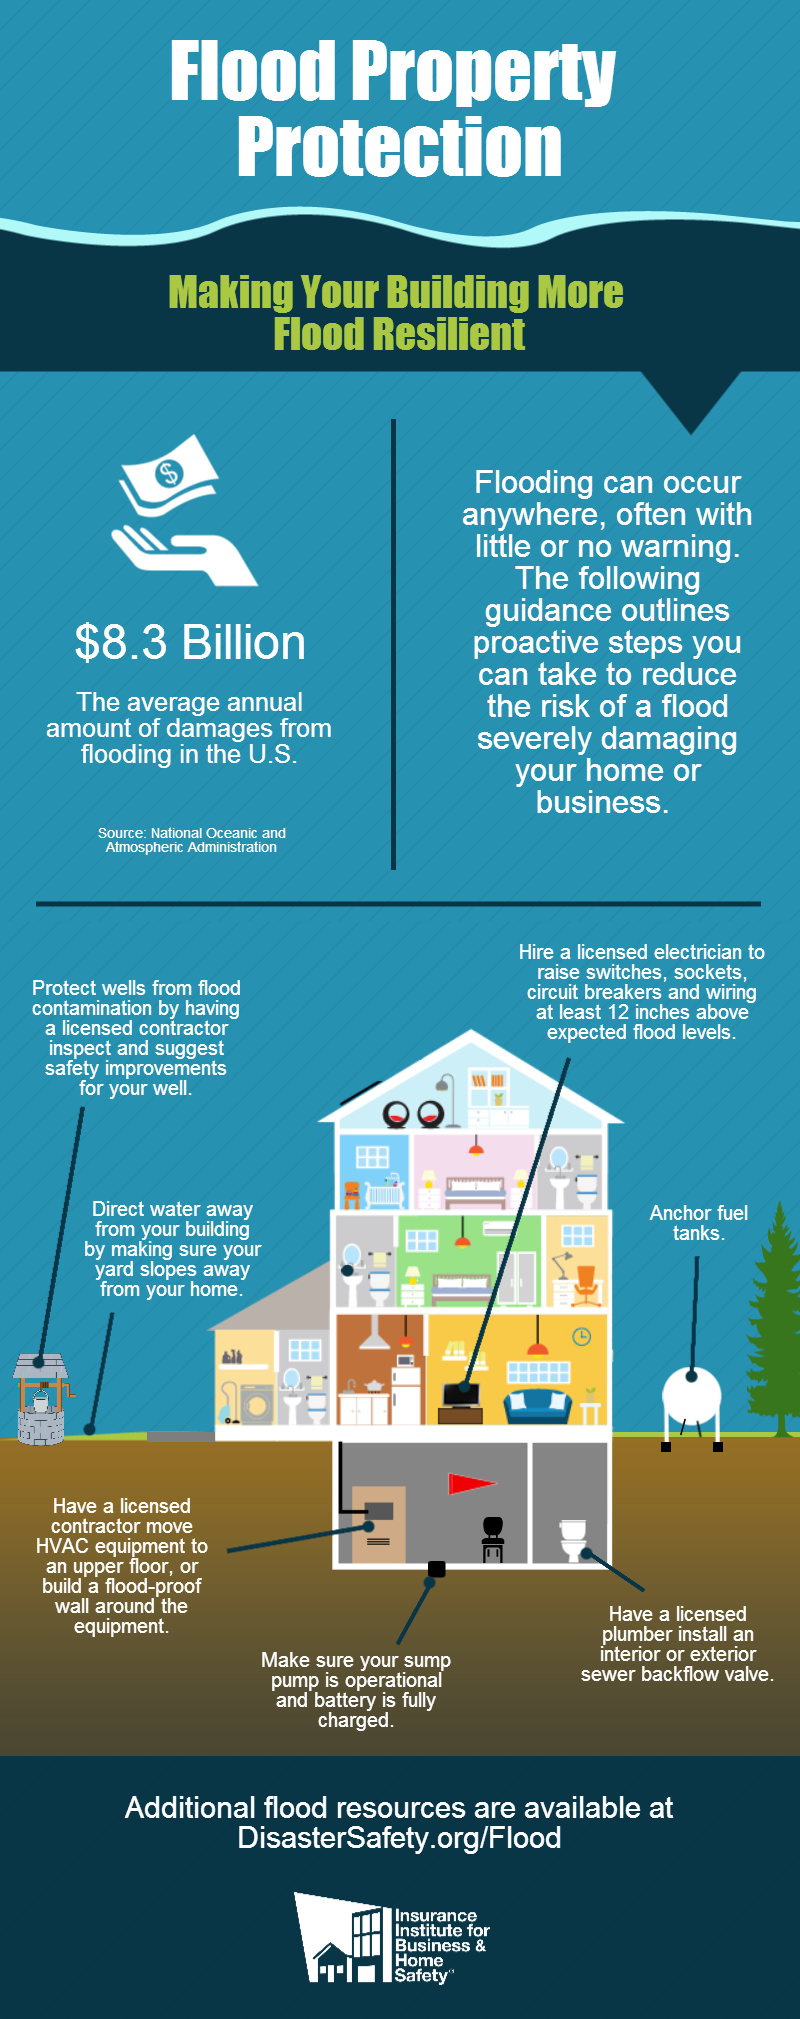 Learn how to make your home more flood resilient. Water